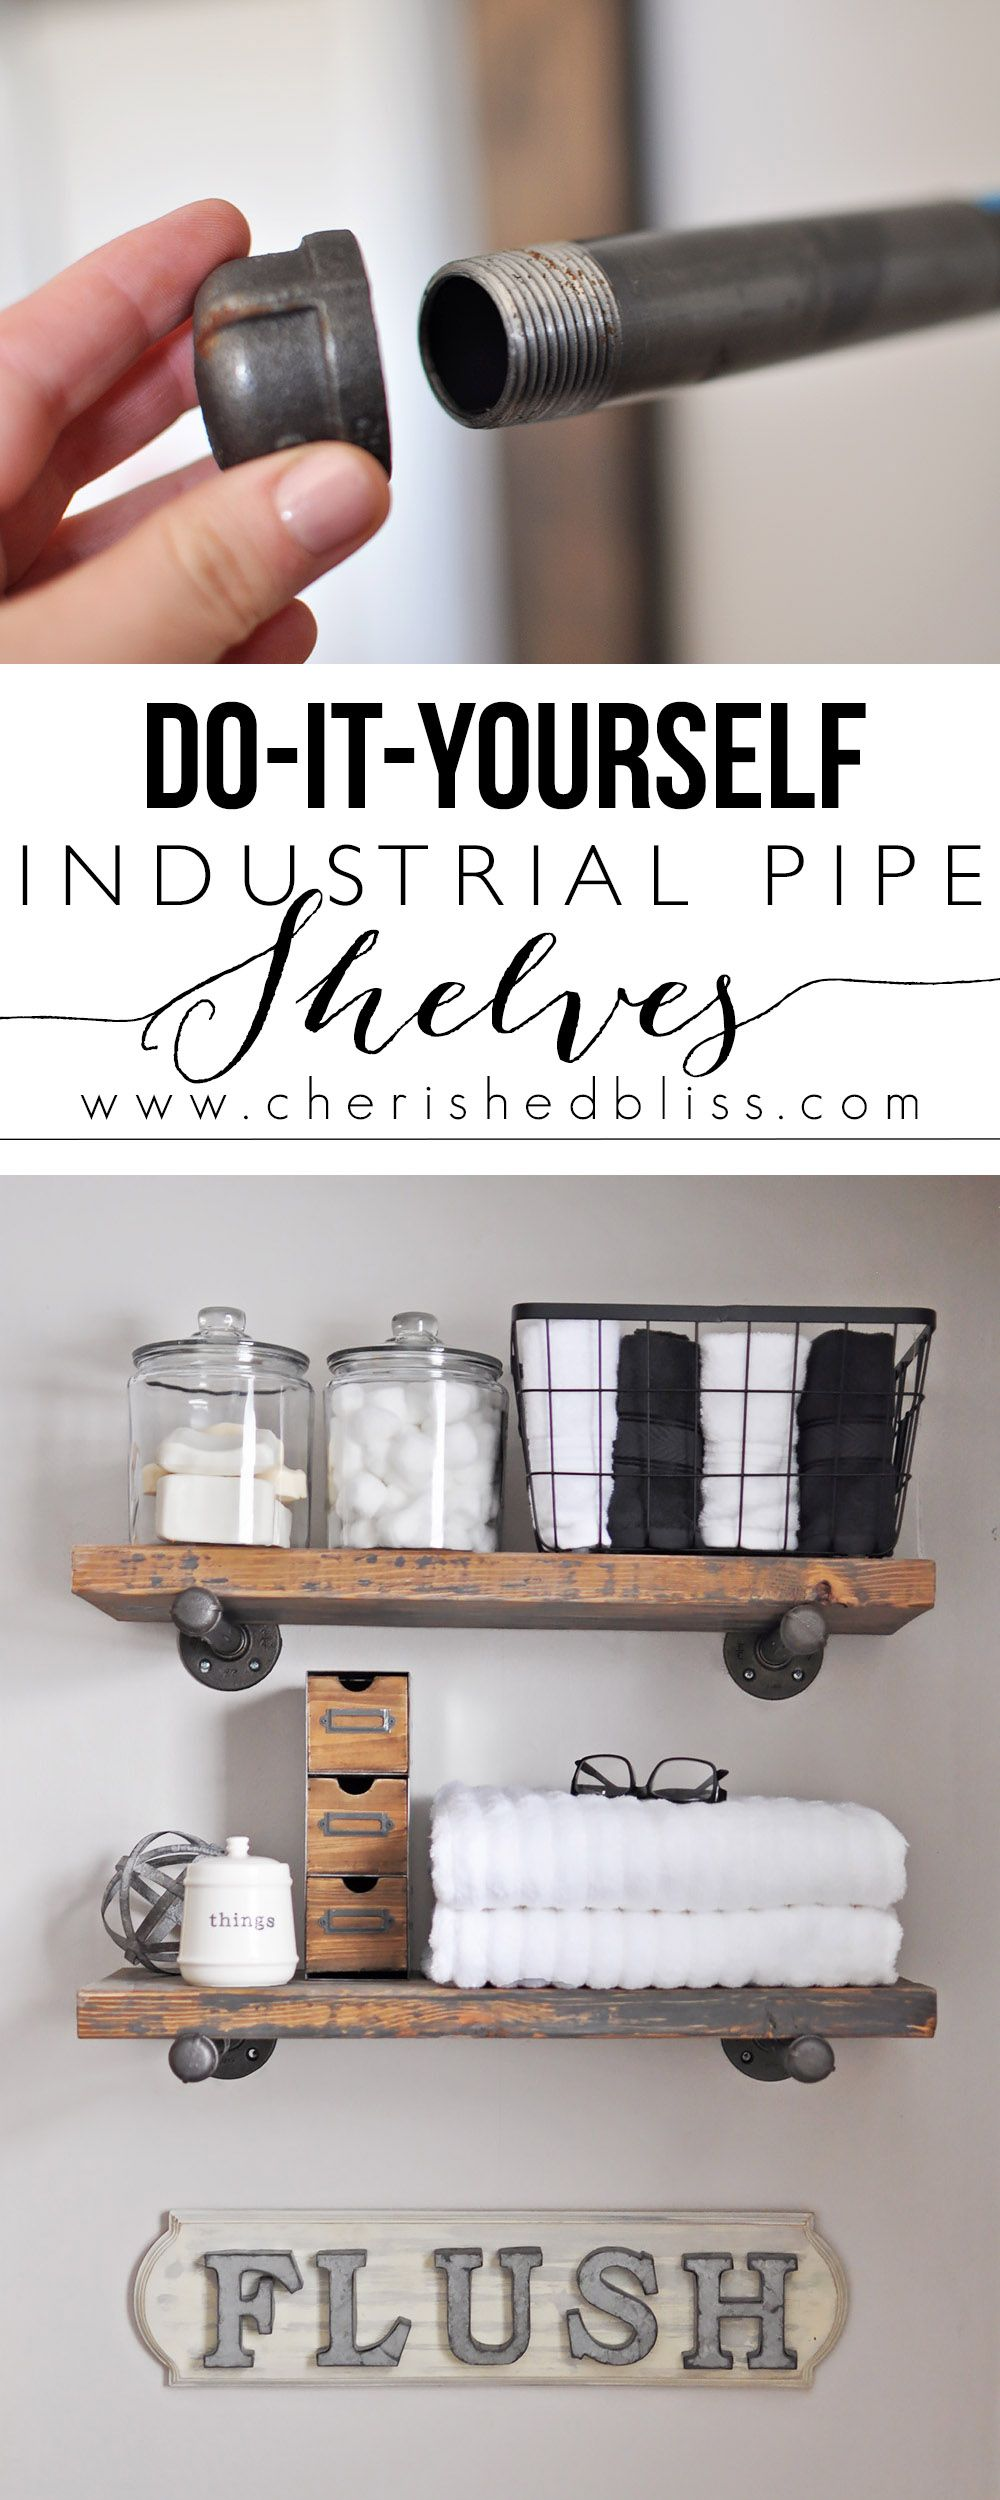 How to build diy industrial pipe shelves pipes industrial and shelving amipublicfo Gallery